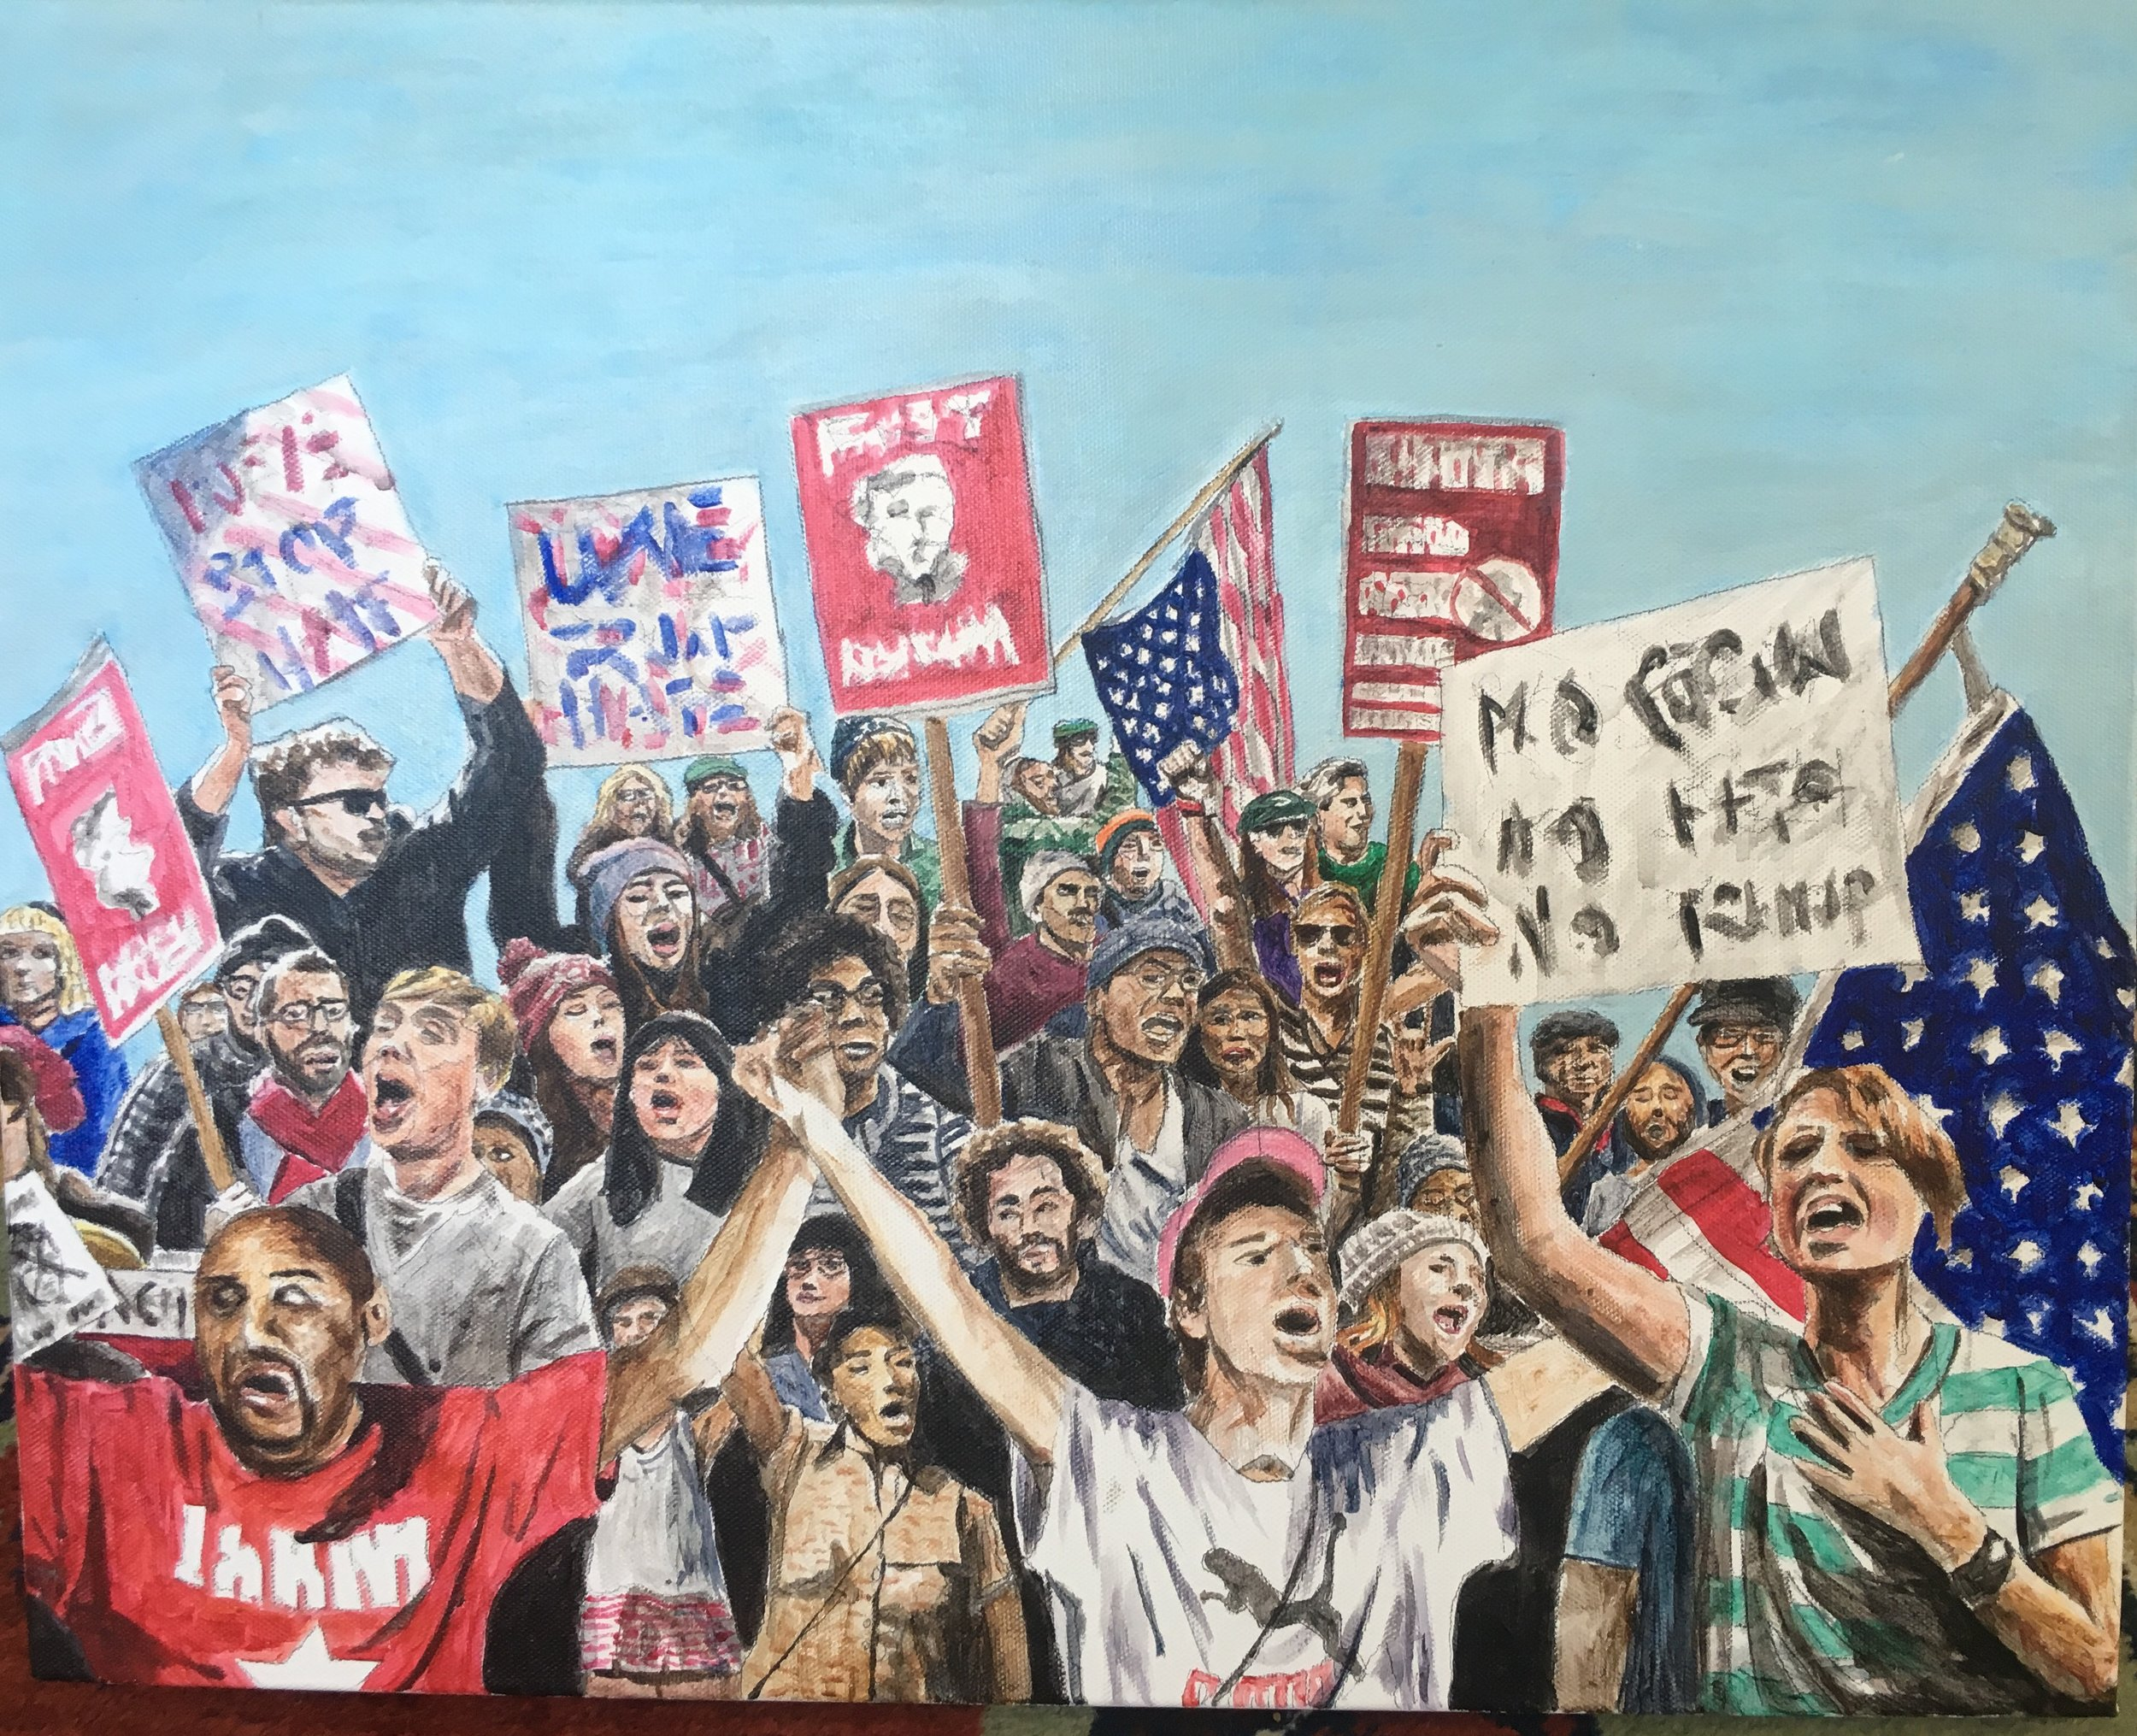 Protest Crowd, 2017, acrylic on canvas, 16 x 20 inches